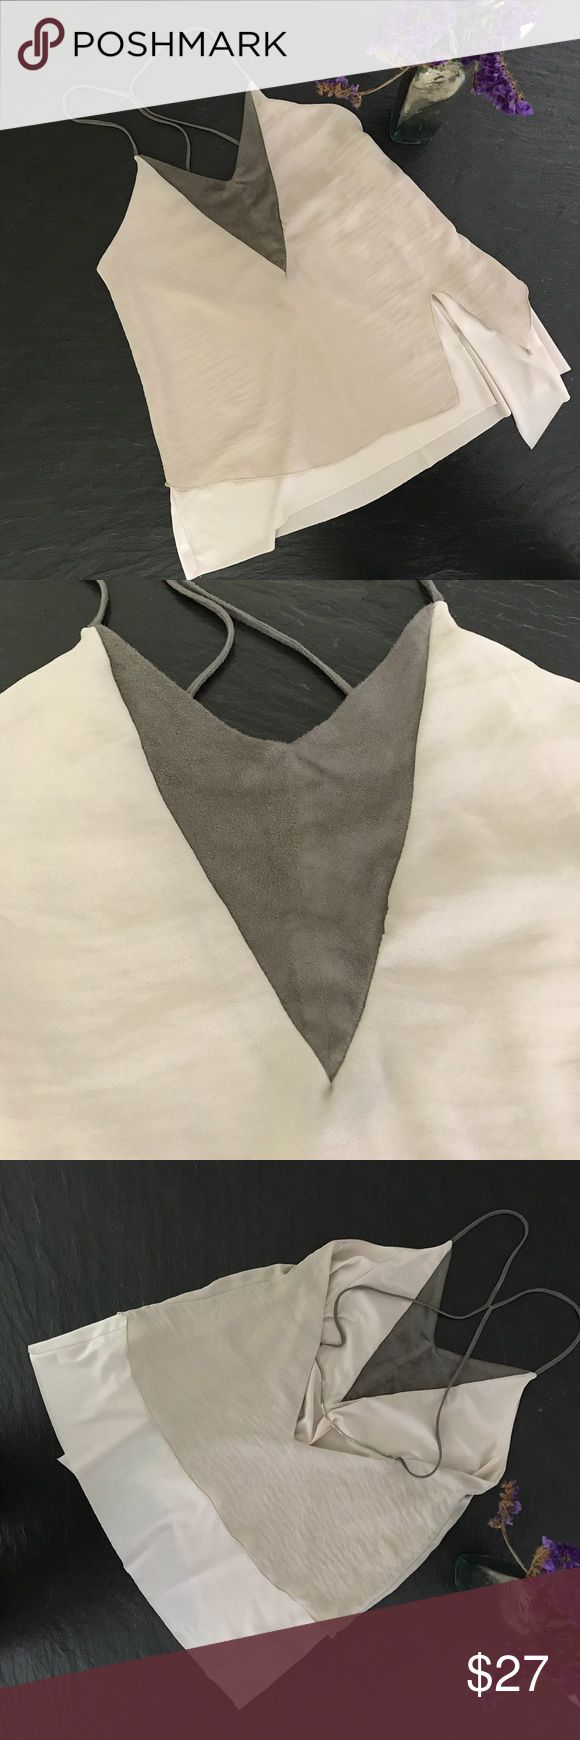 """Zara Strappy Top Zara top that's made of two layers and hangs gracefully on tiny straps.  Front """"V"""" is a faux suede.  There's an elegant metal chain (blocks, not loops) across the lower back.  Mint condition. Zara Tops"""